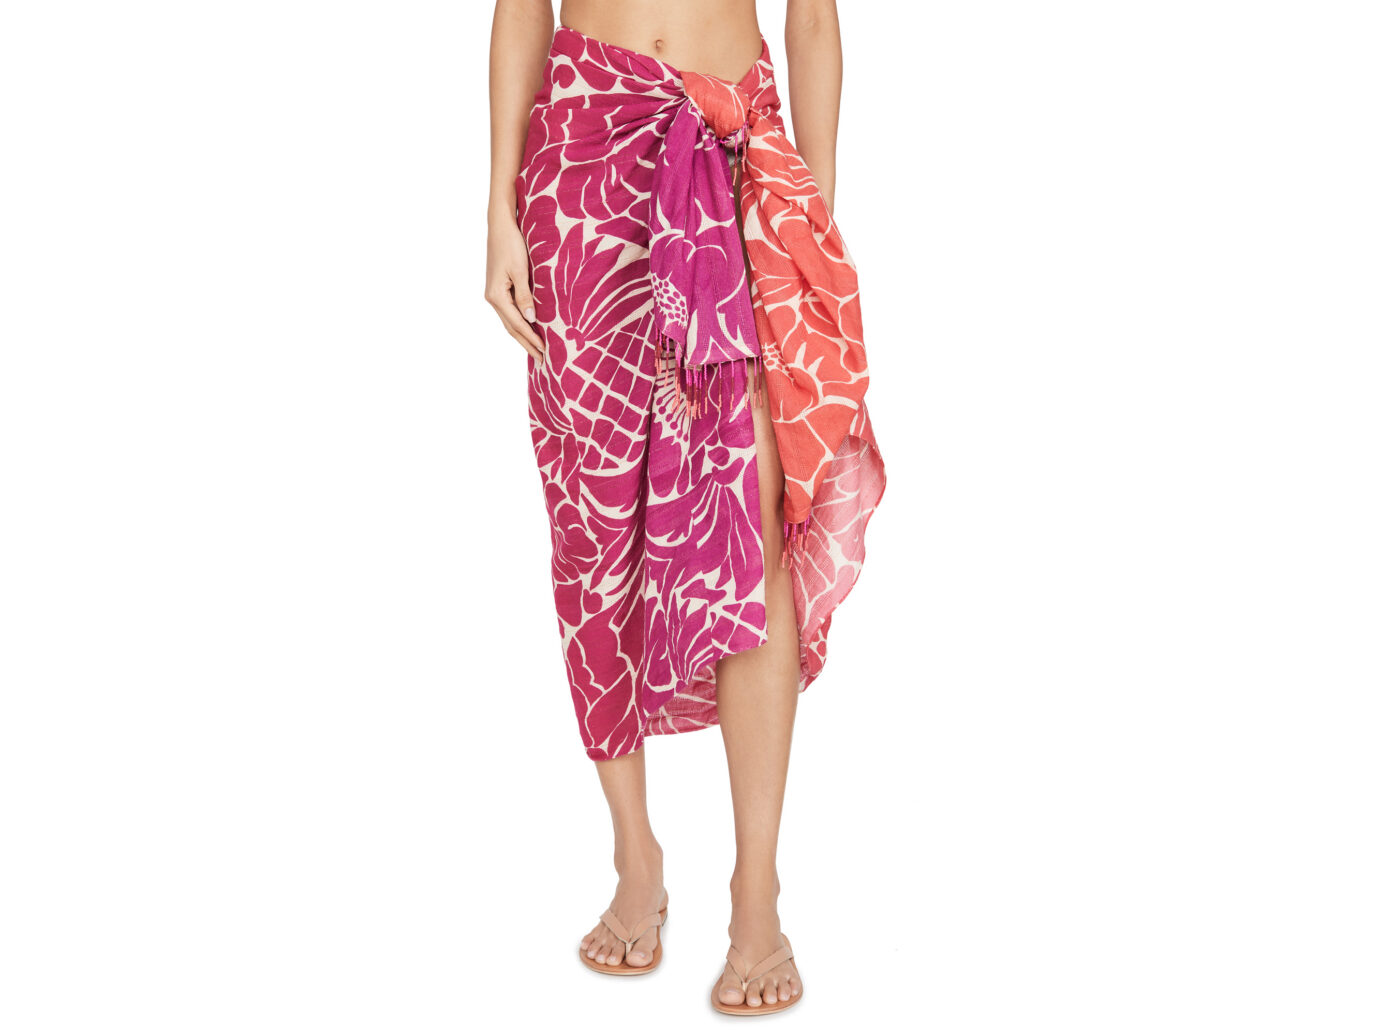 FARM Rio Graphic Dreams Sarong Cover Up